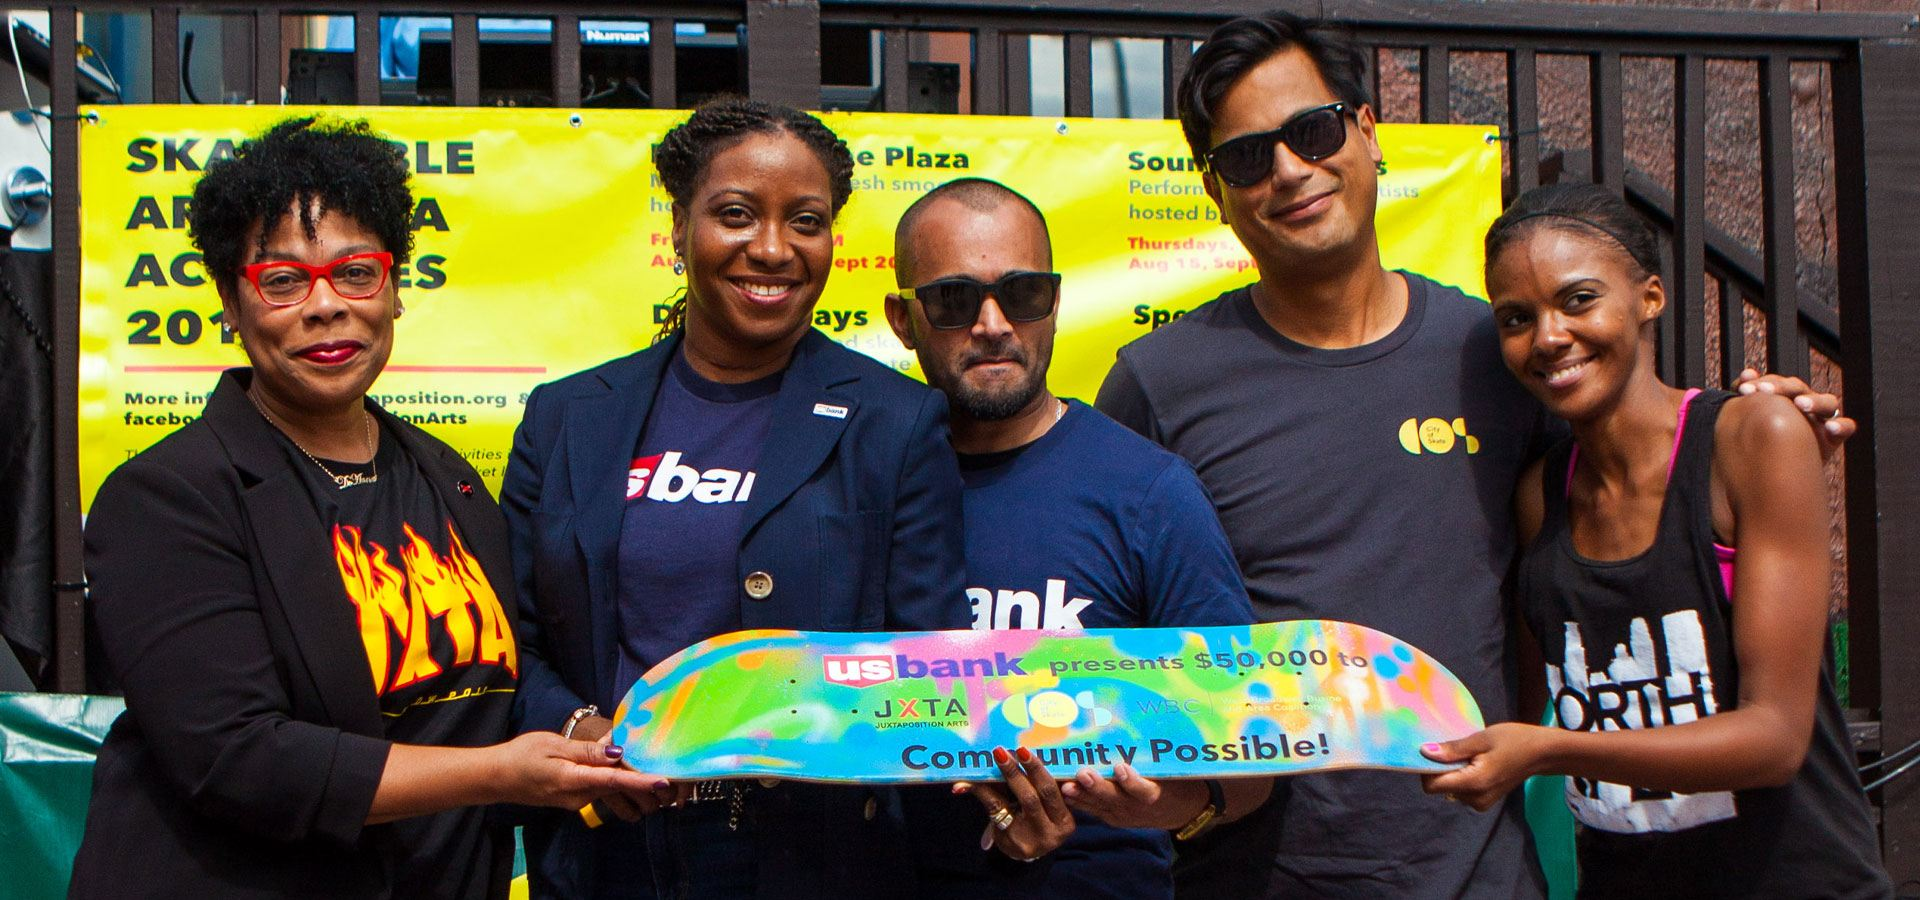 Several people posing with a commemorative skateboard with the words US Bank presents $50,000 to JXTA, City of Skate, and West Broadway Coalition for Community Possible!